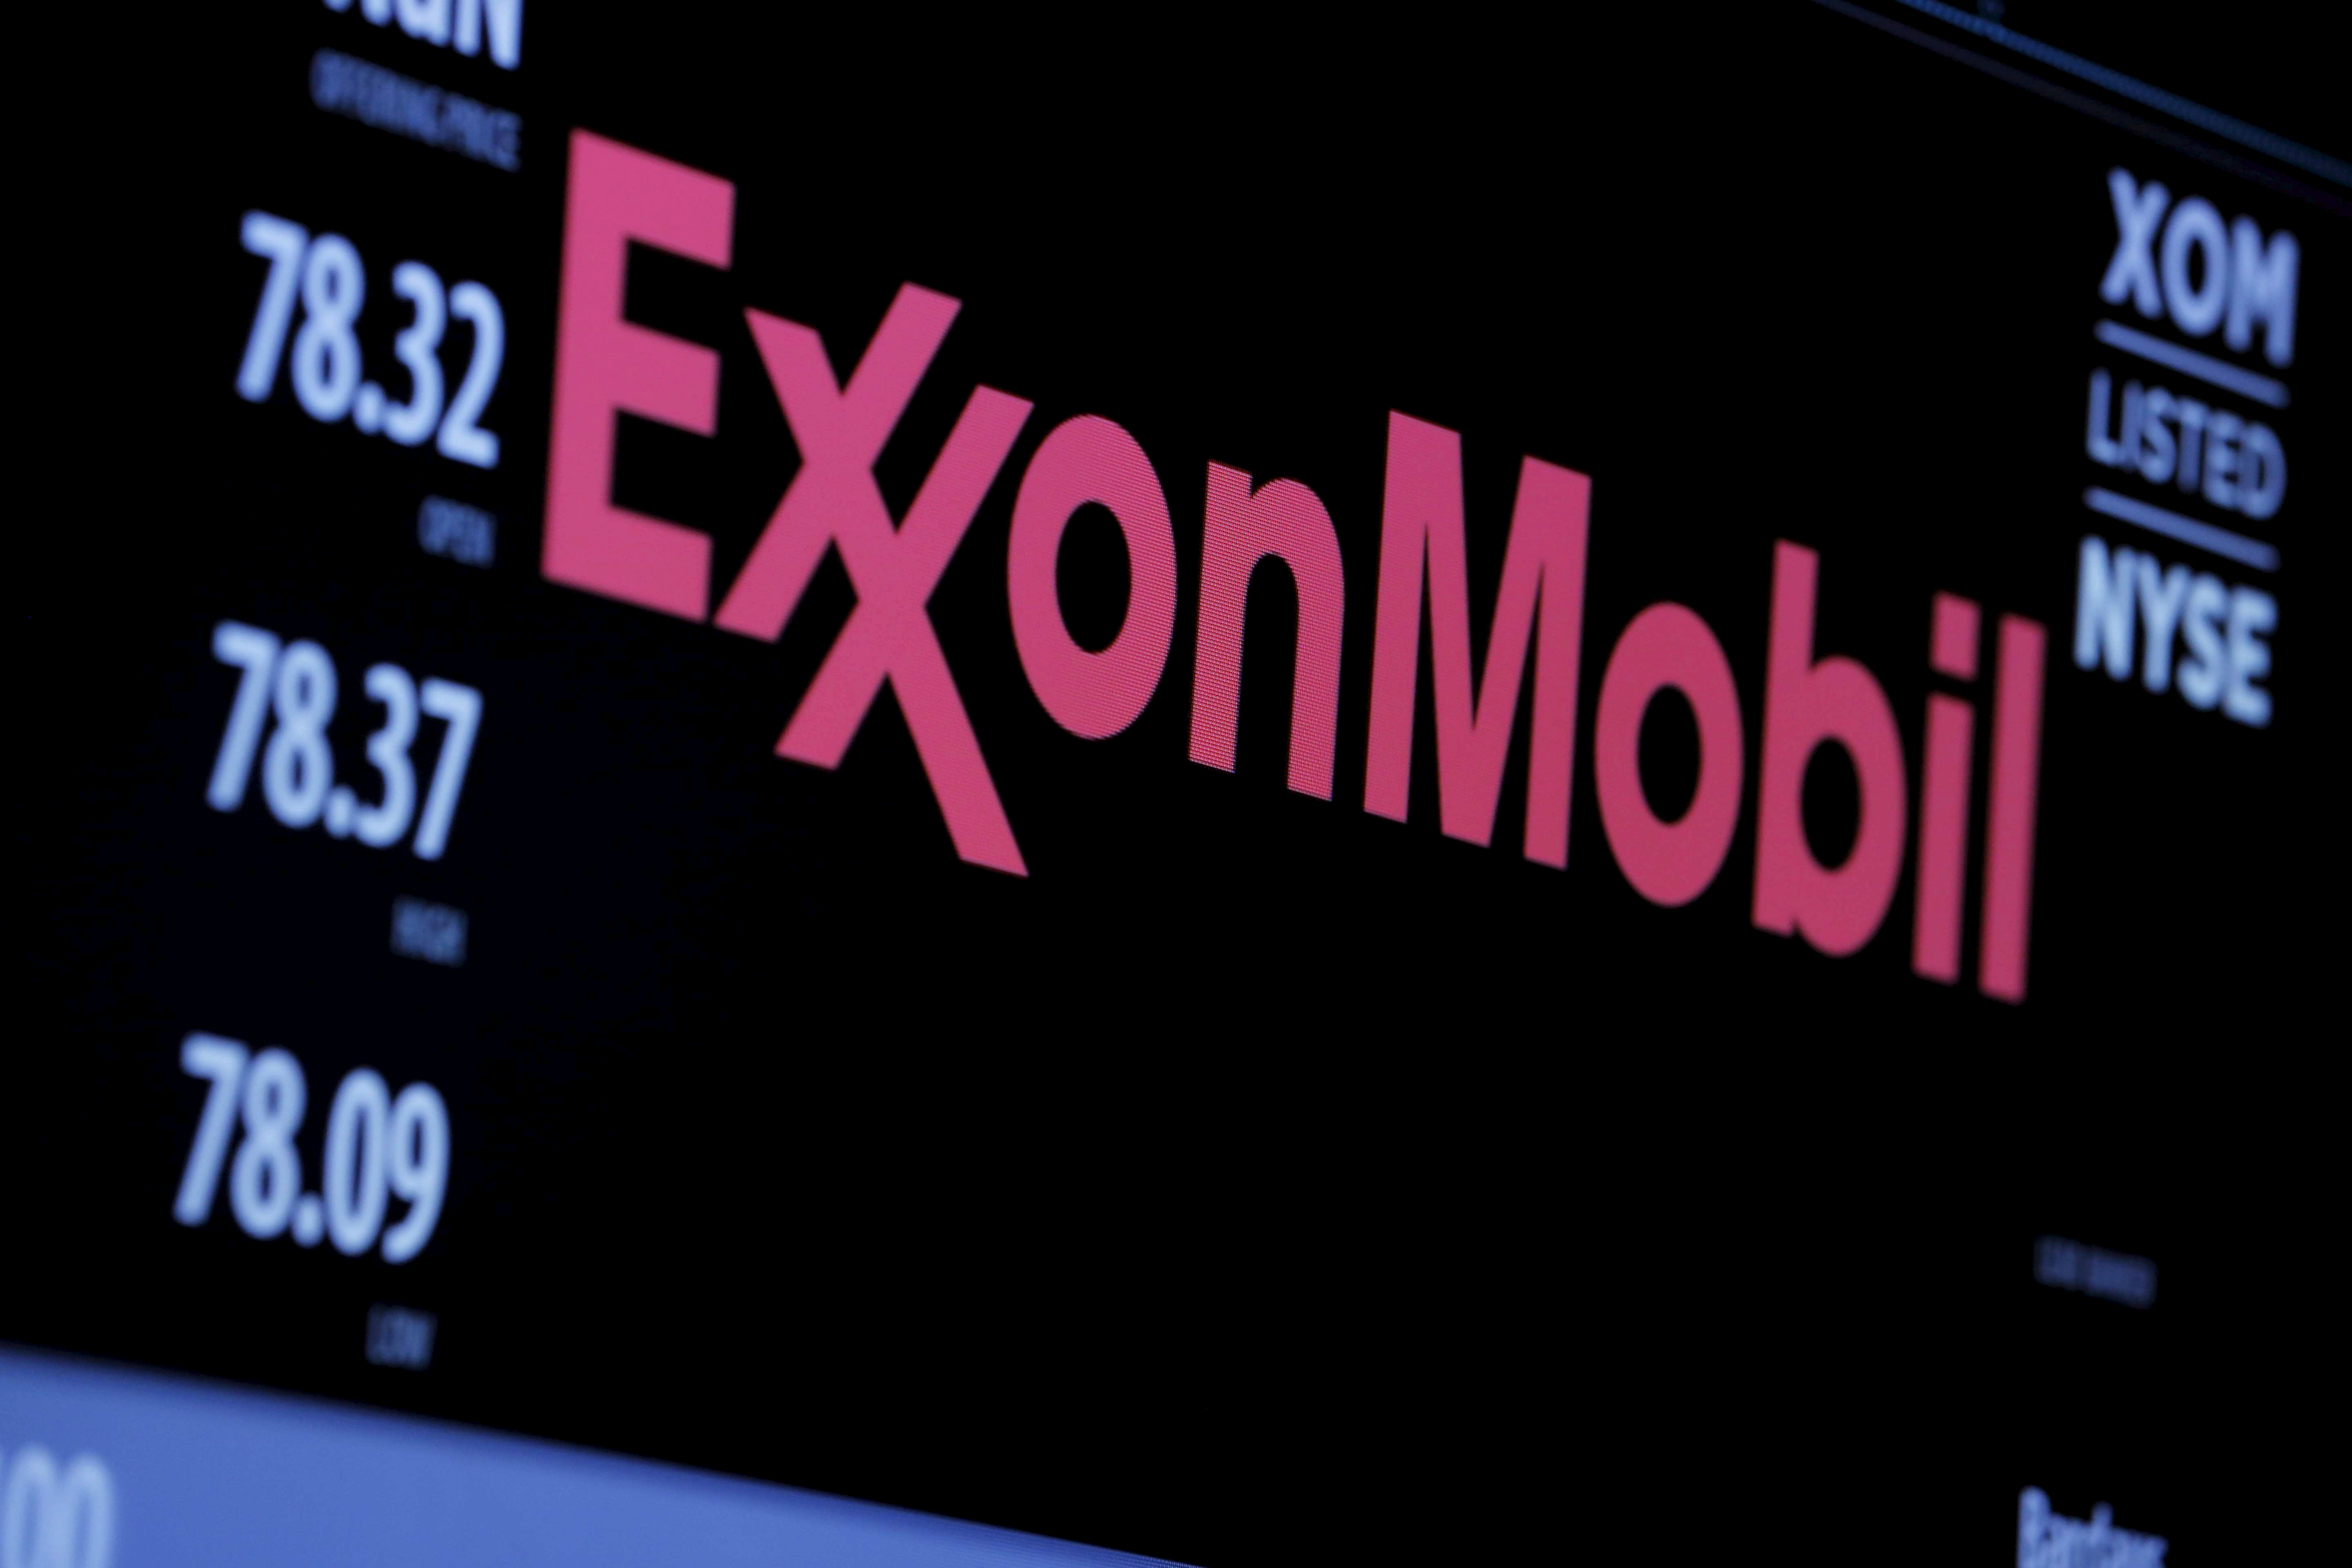 Former Exxon Mobil Corp. CEO Rex Tillerson was an outspoken critic of the rule designed to prevent bribery.